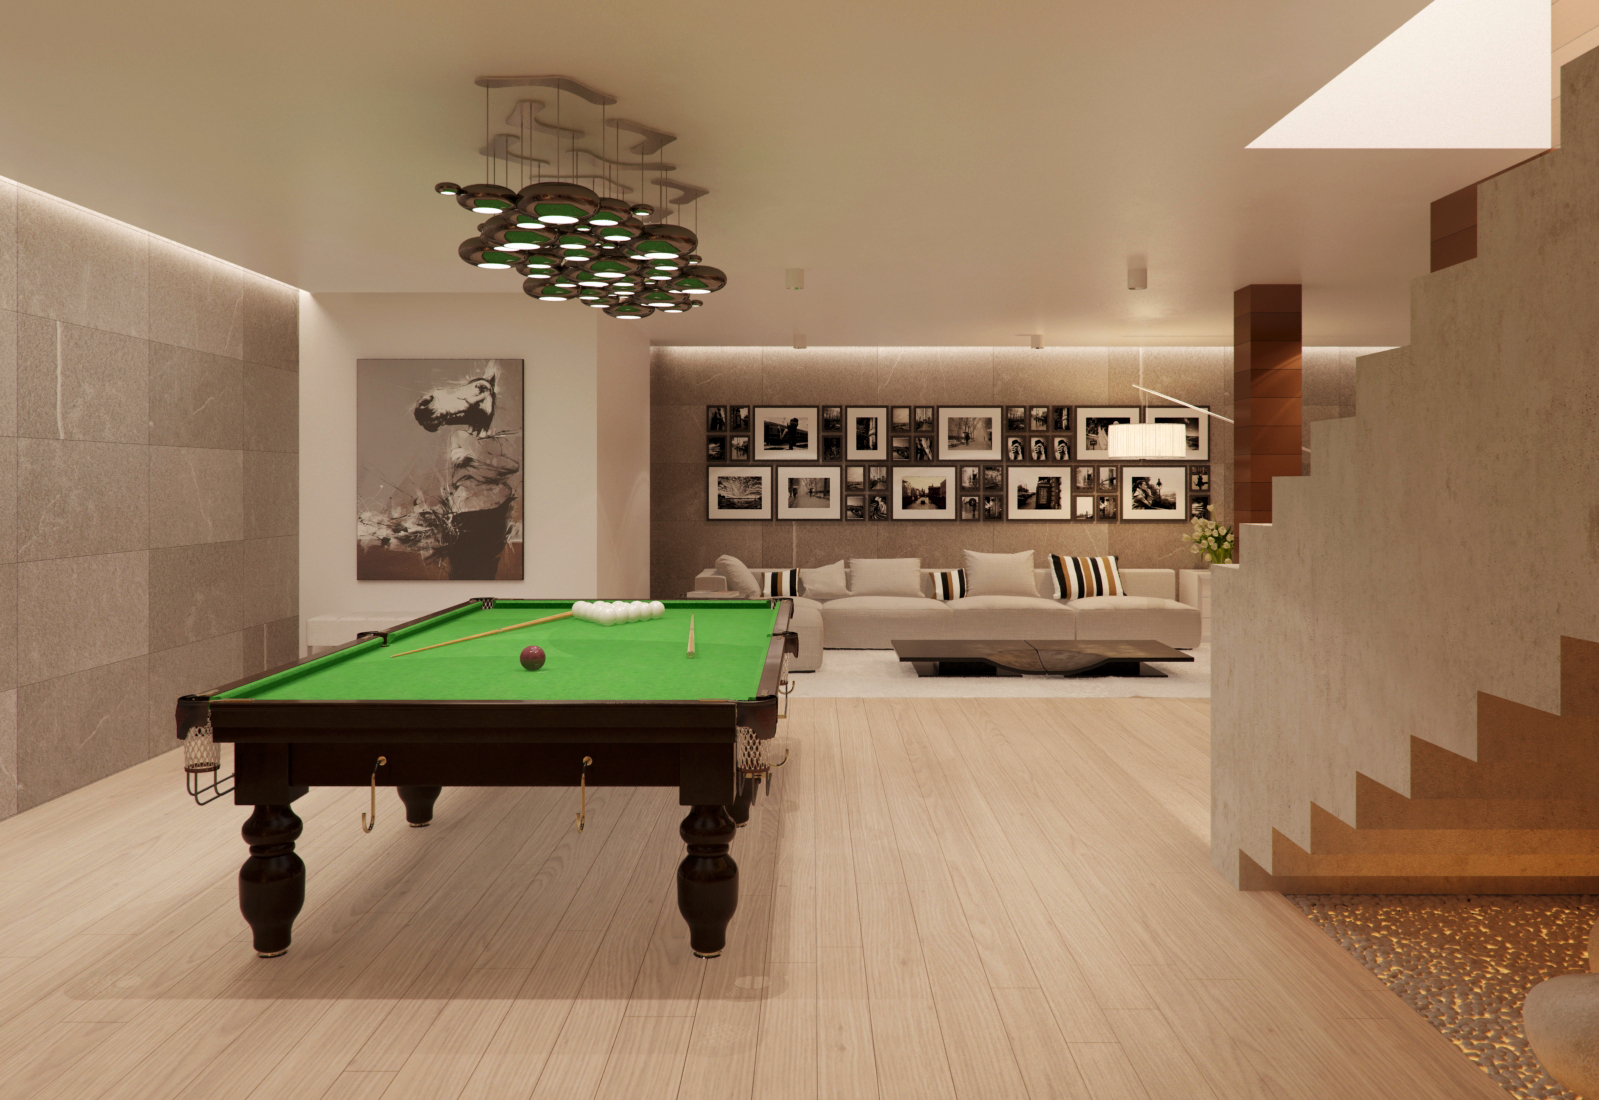 Modern house interior design ideas with elegant indoor for Small pool table room ideas